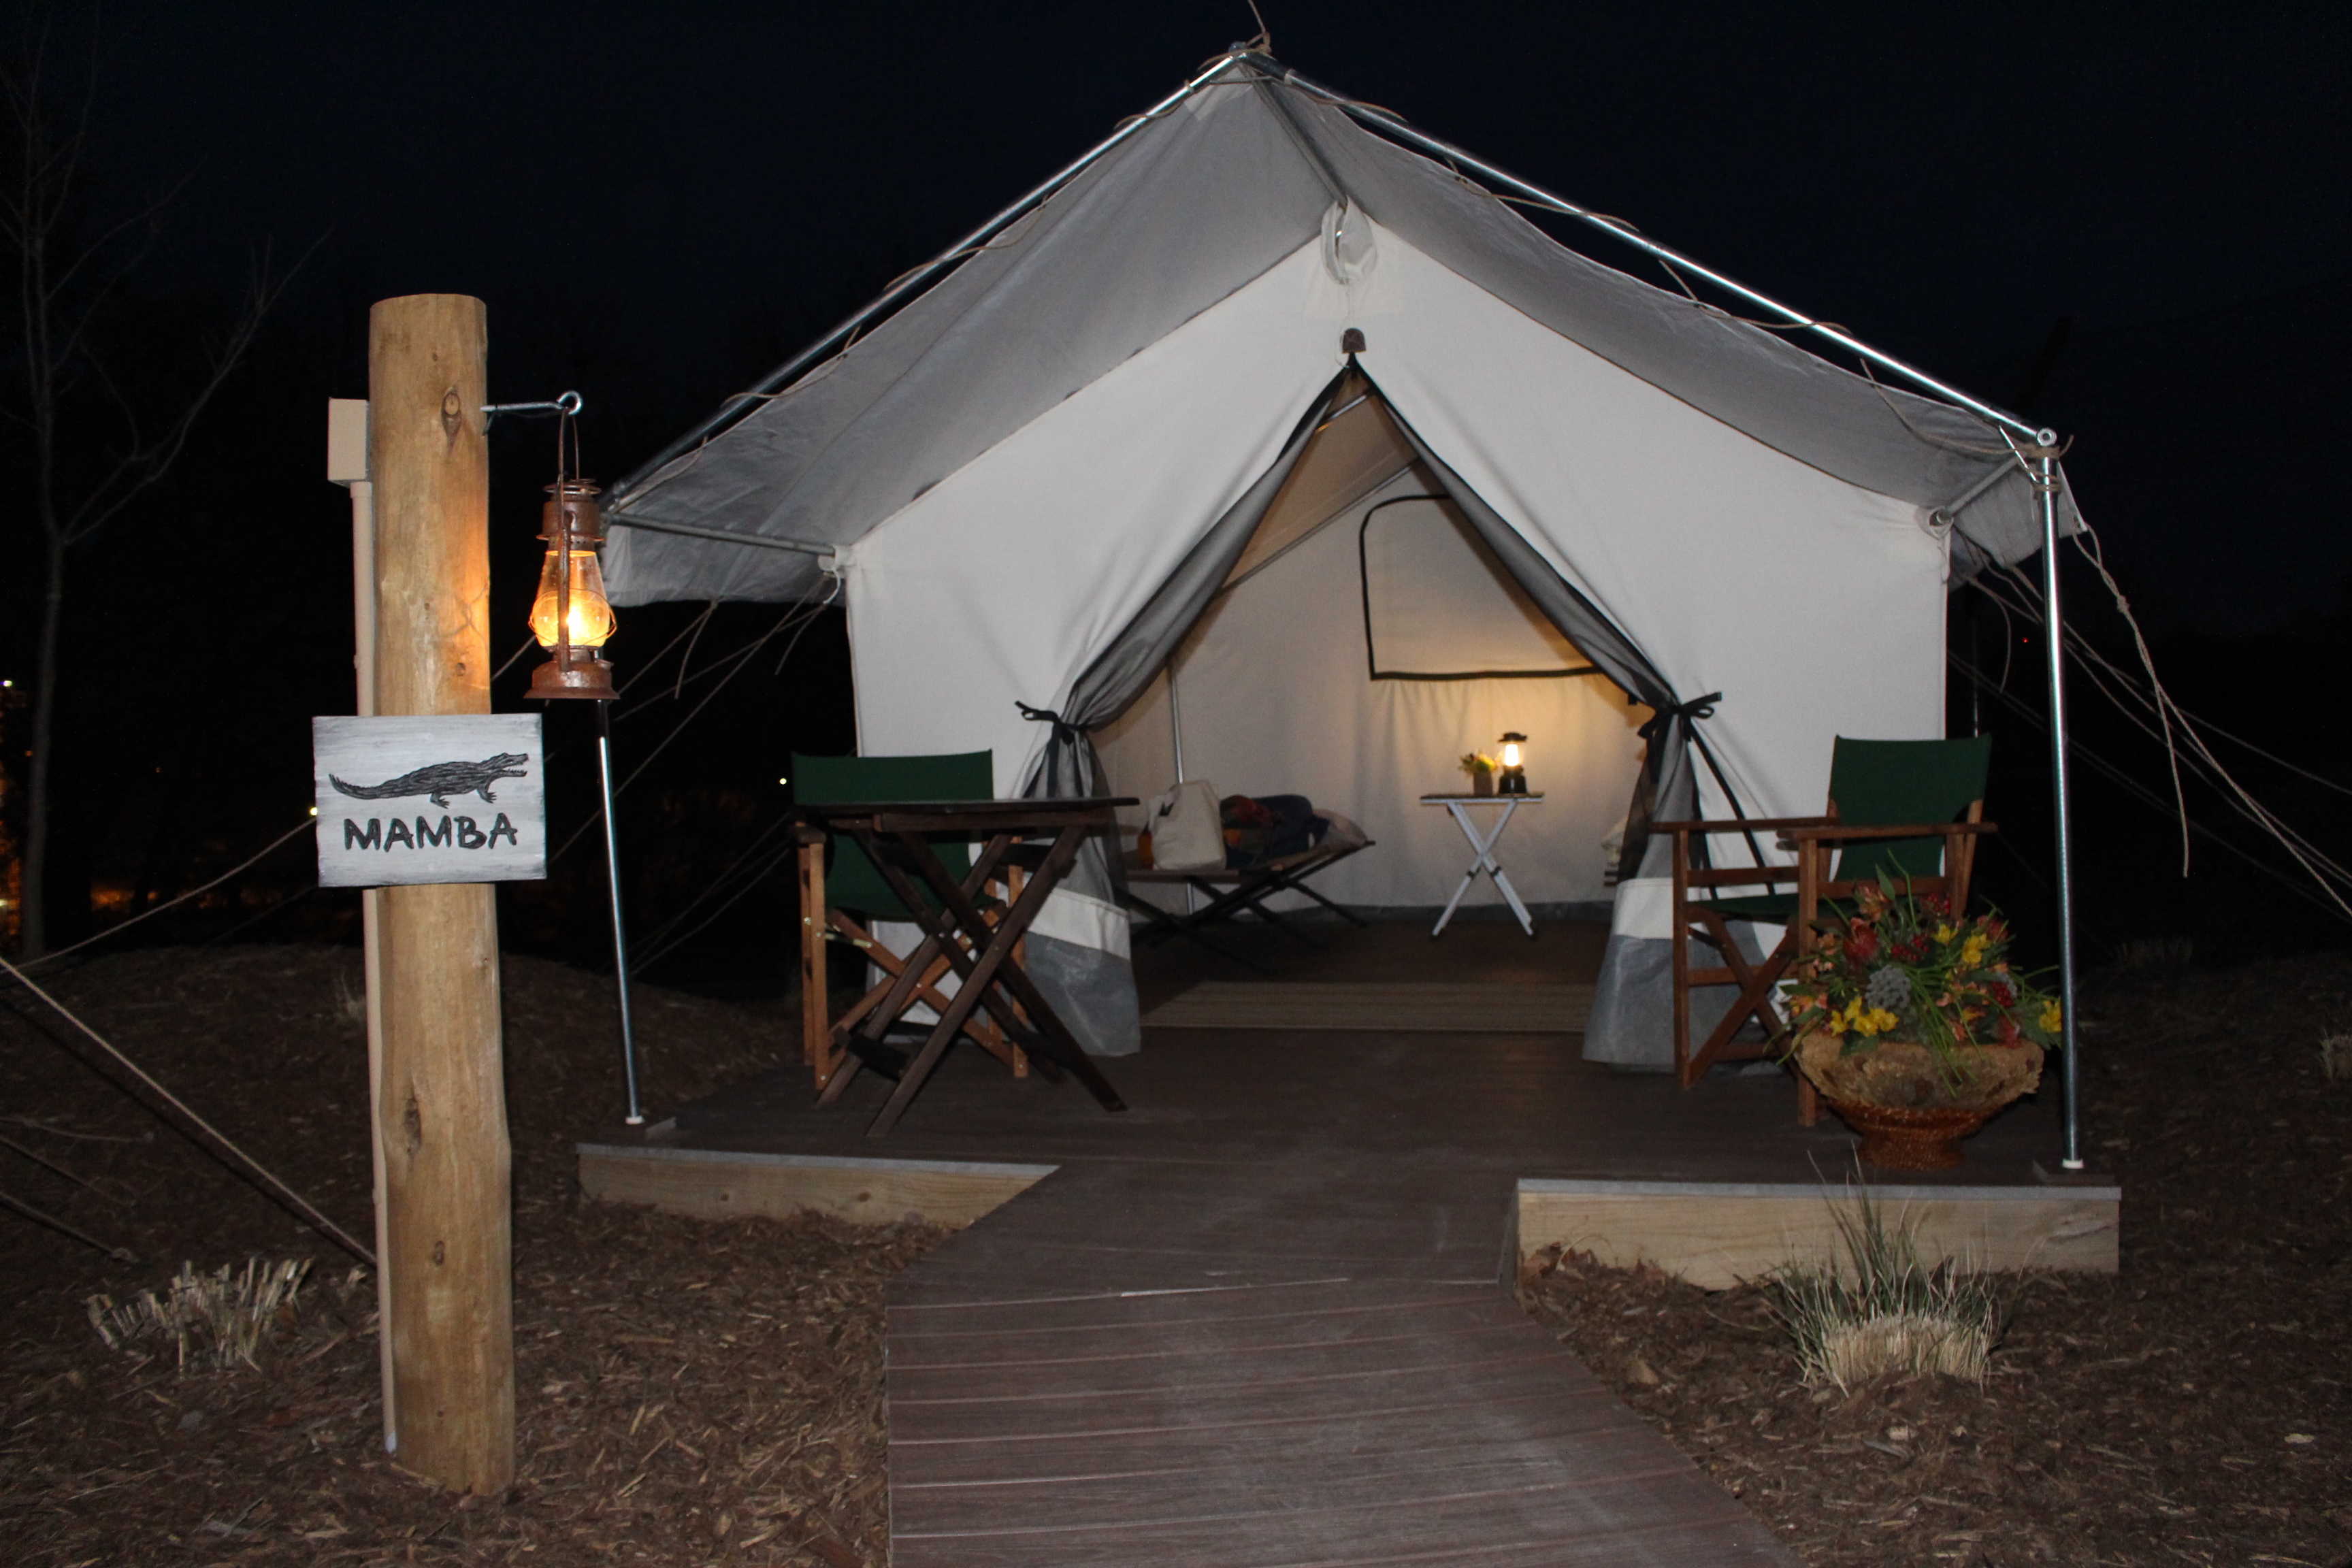 Join Us For An Overnight Program Where Guests Spend The Night At Zoo S Safari Tent Camp Site And Experience Exhibits After Hours